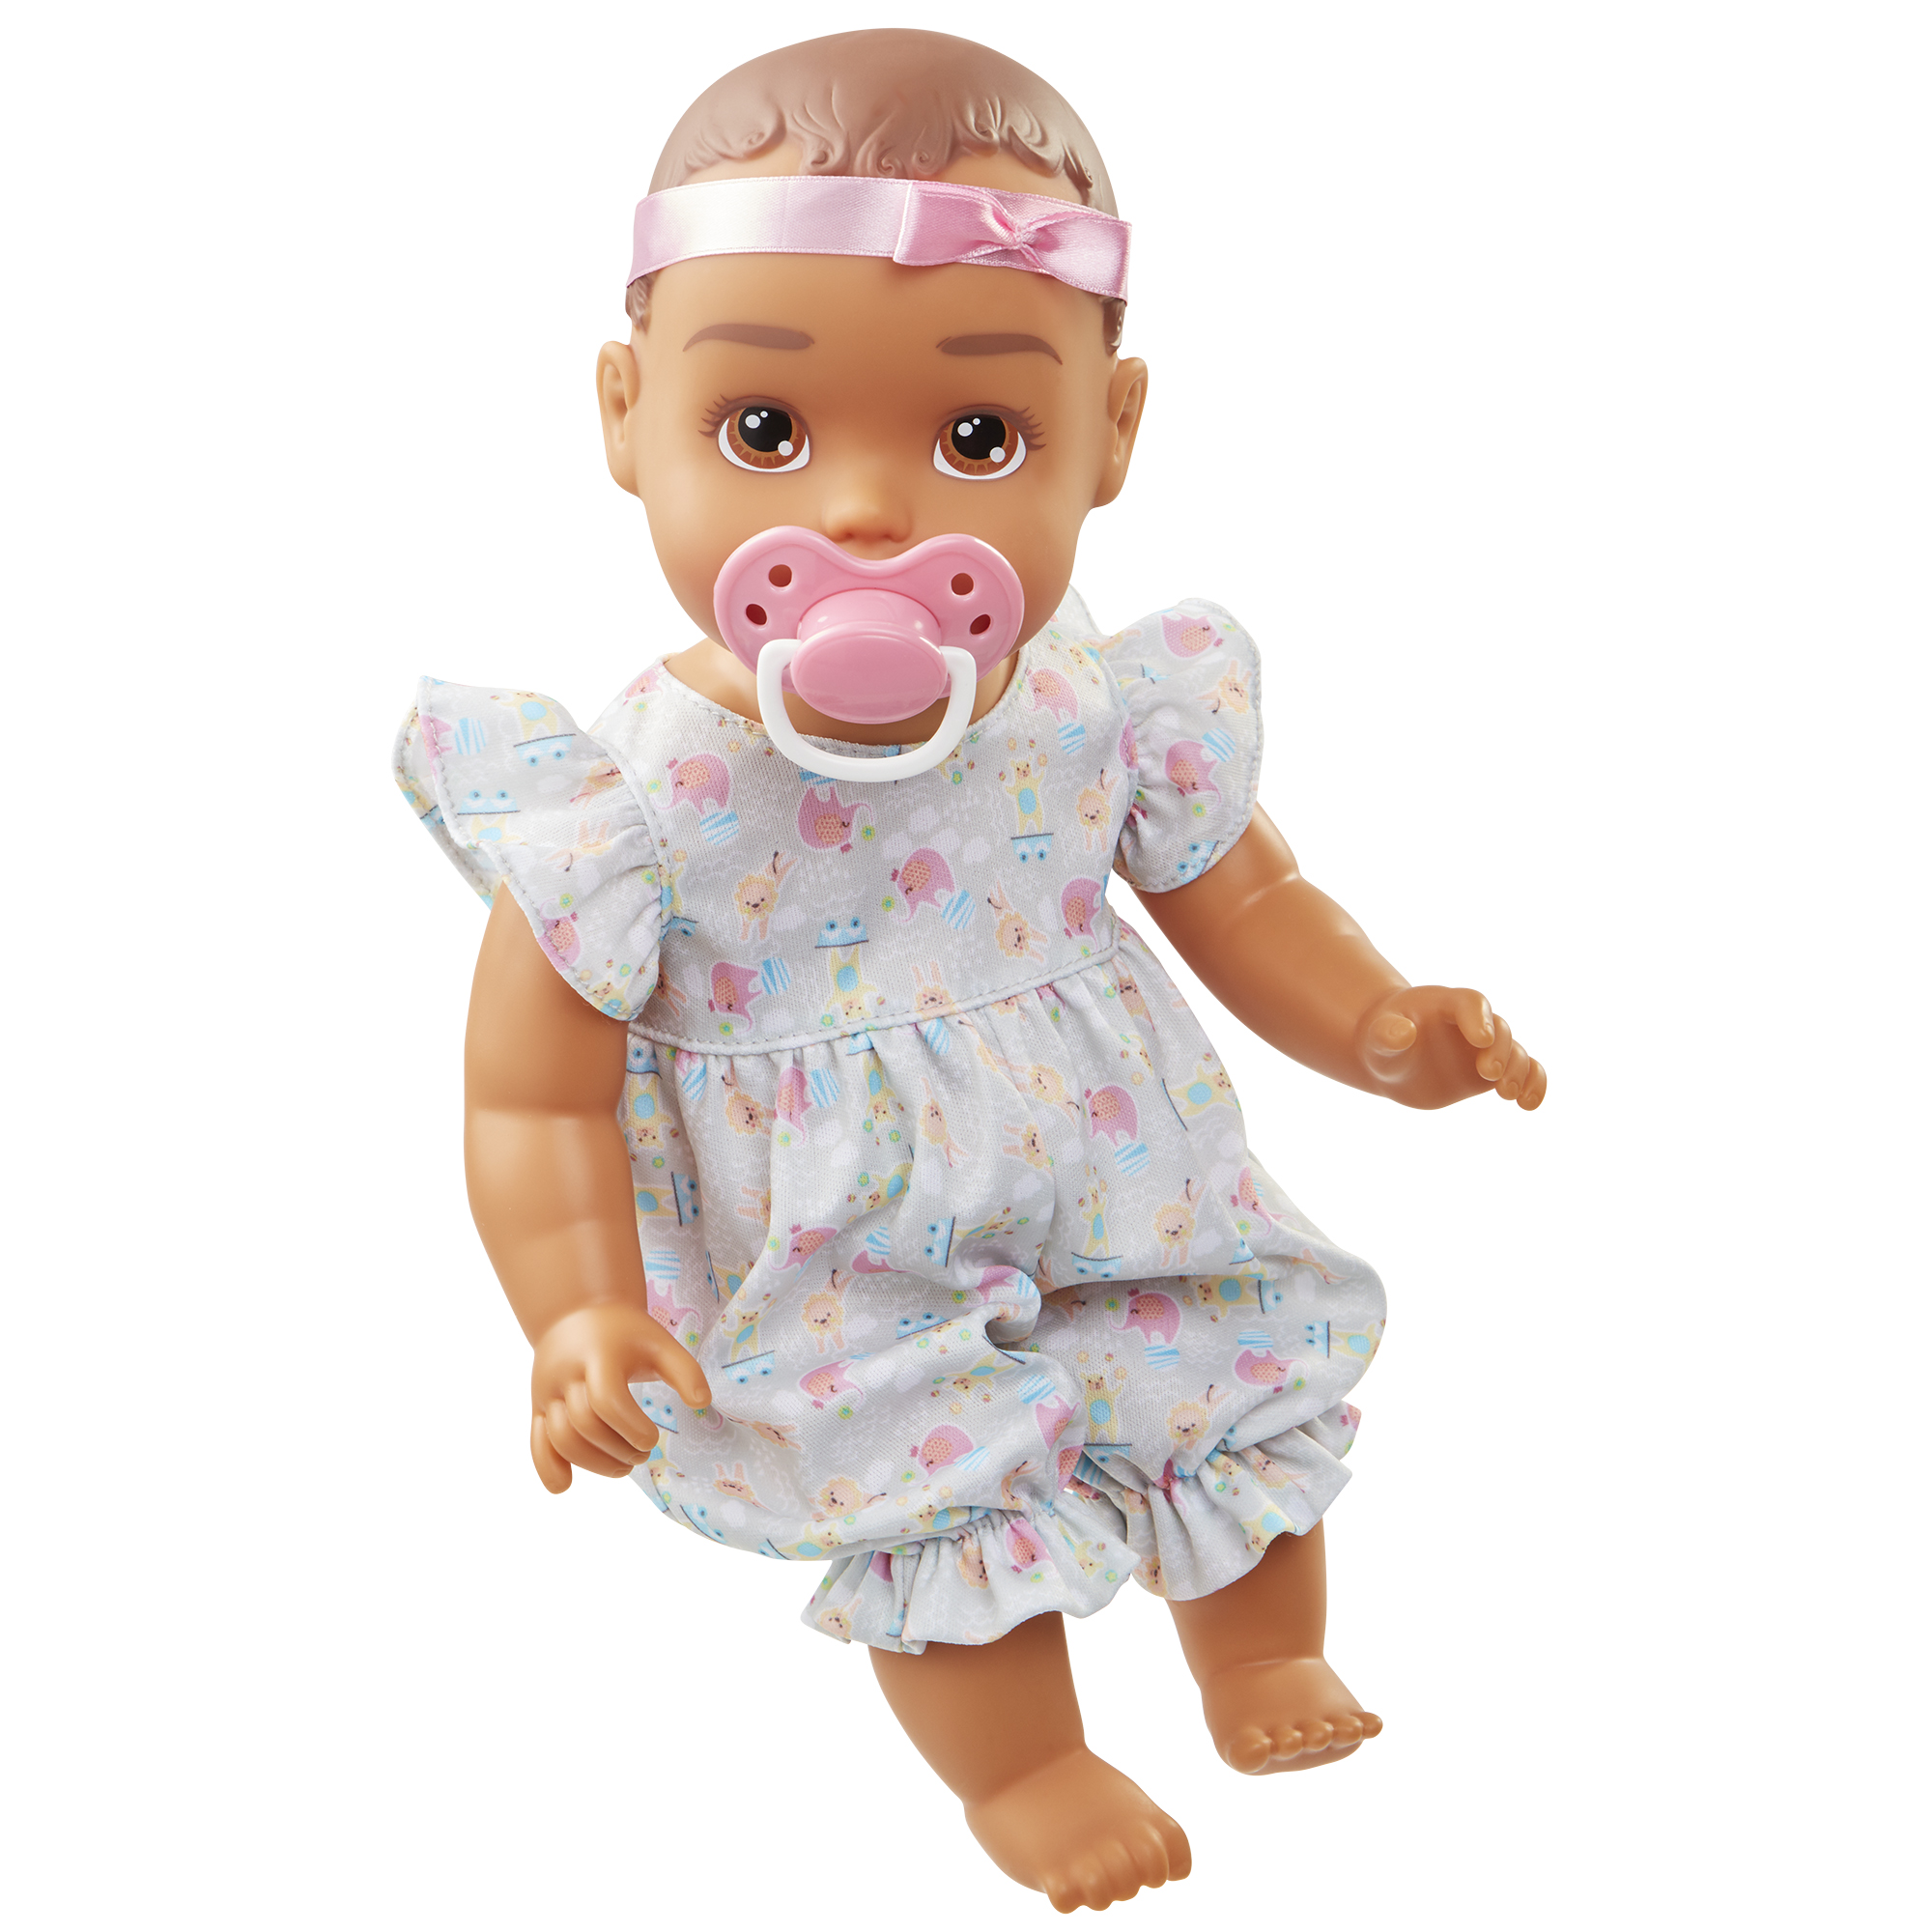 Perfectly Cute Baby Giggle Fun Baby 14 inch Girl Doll